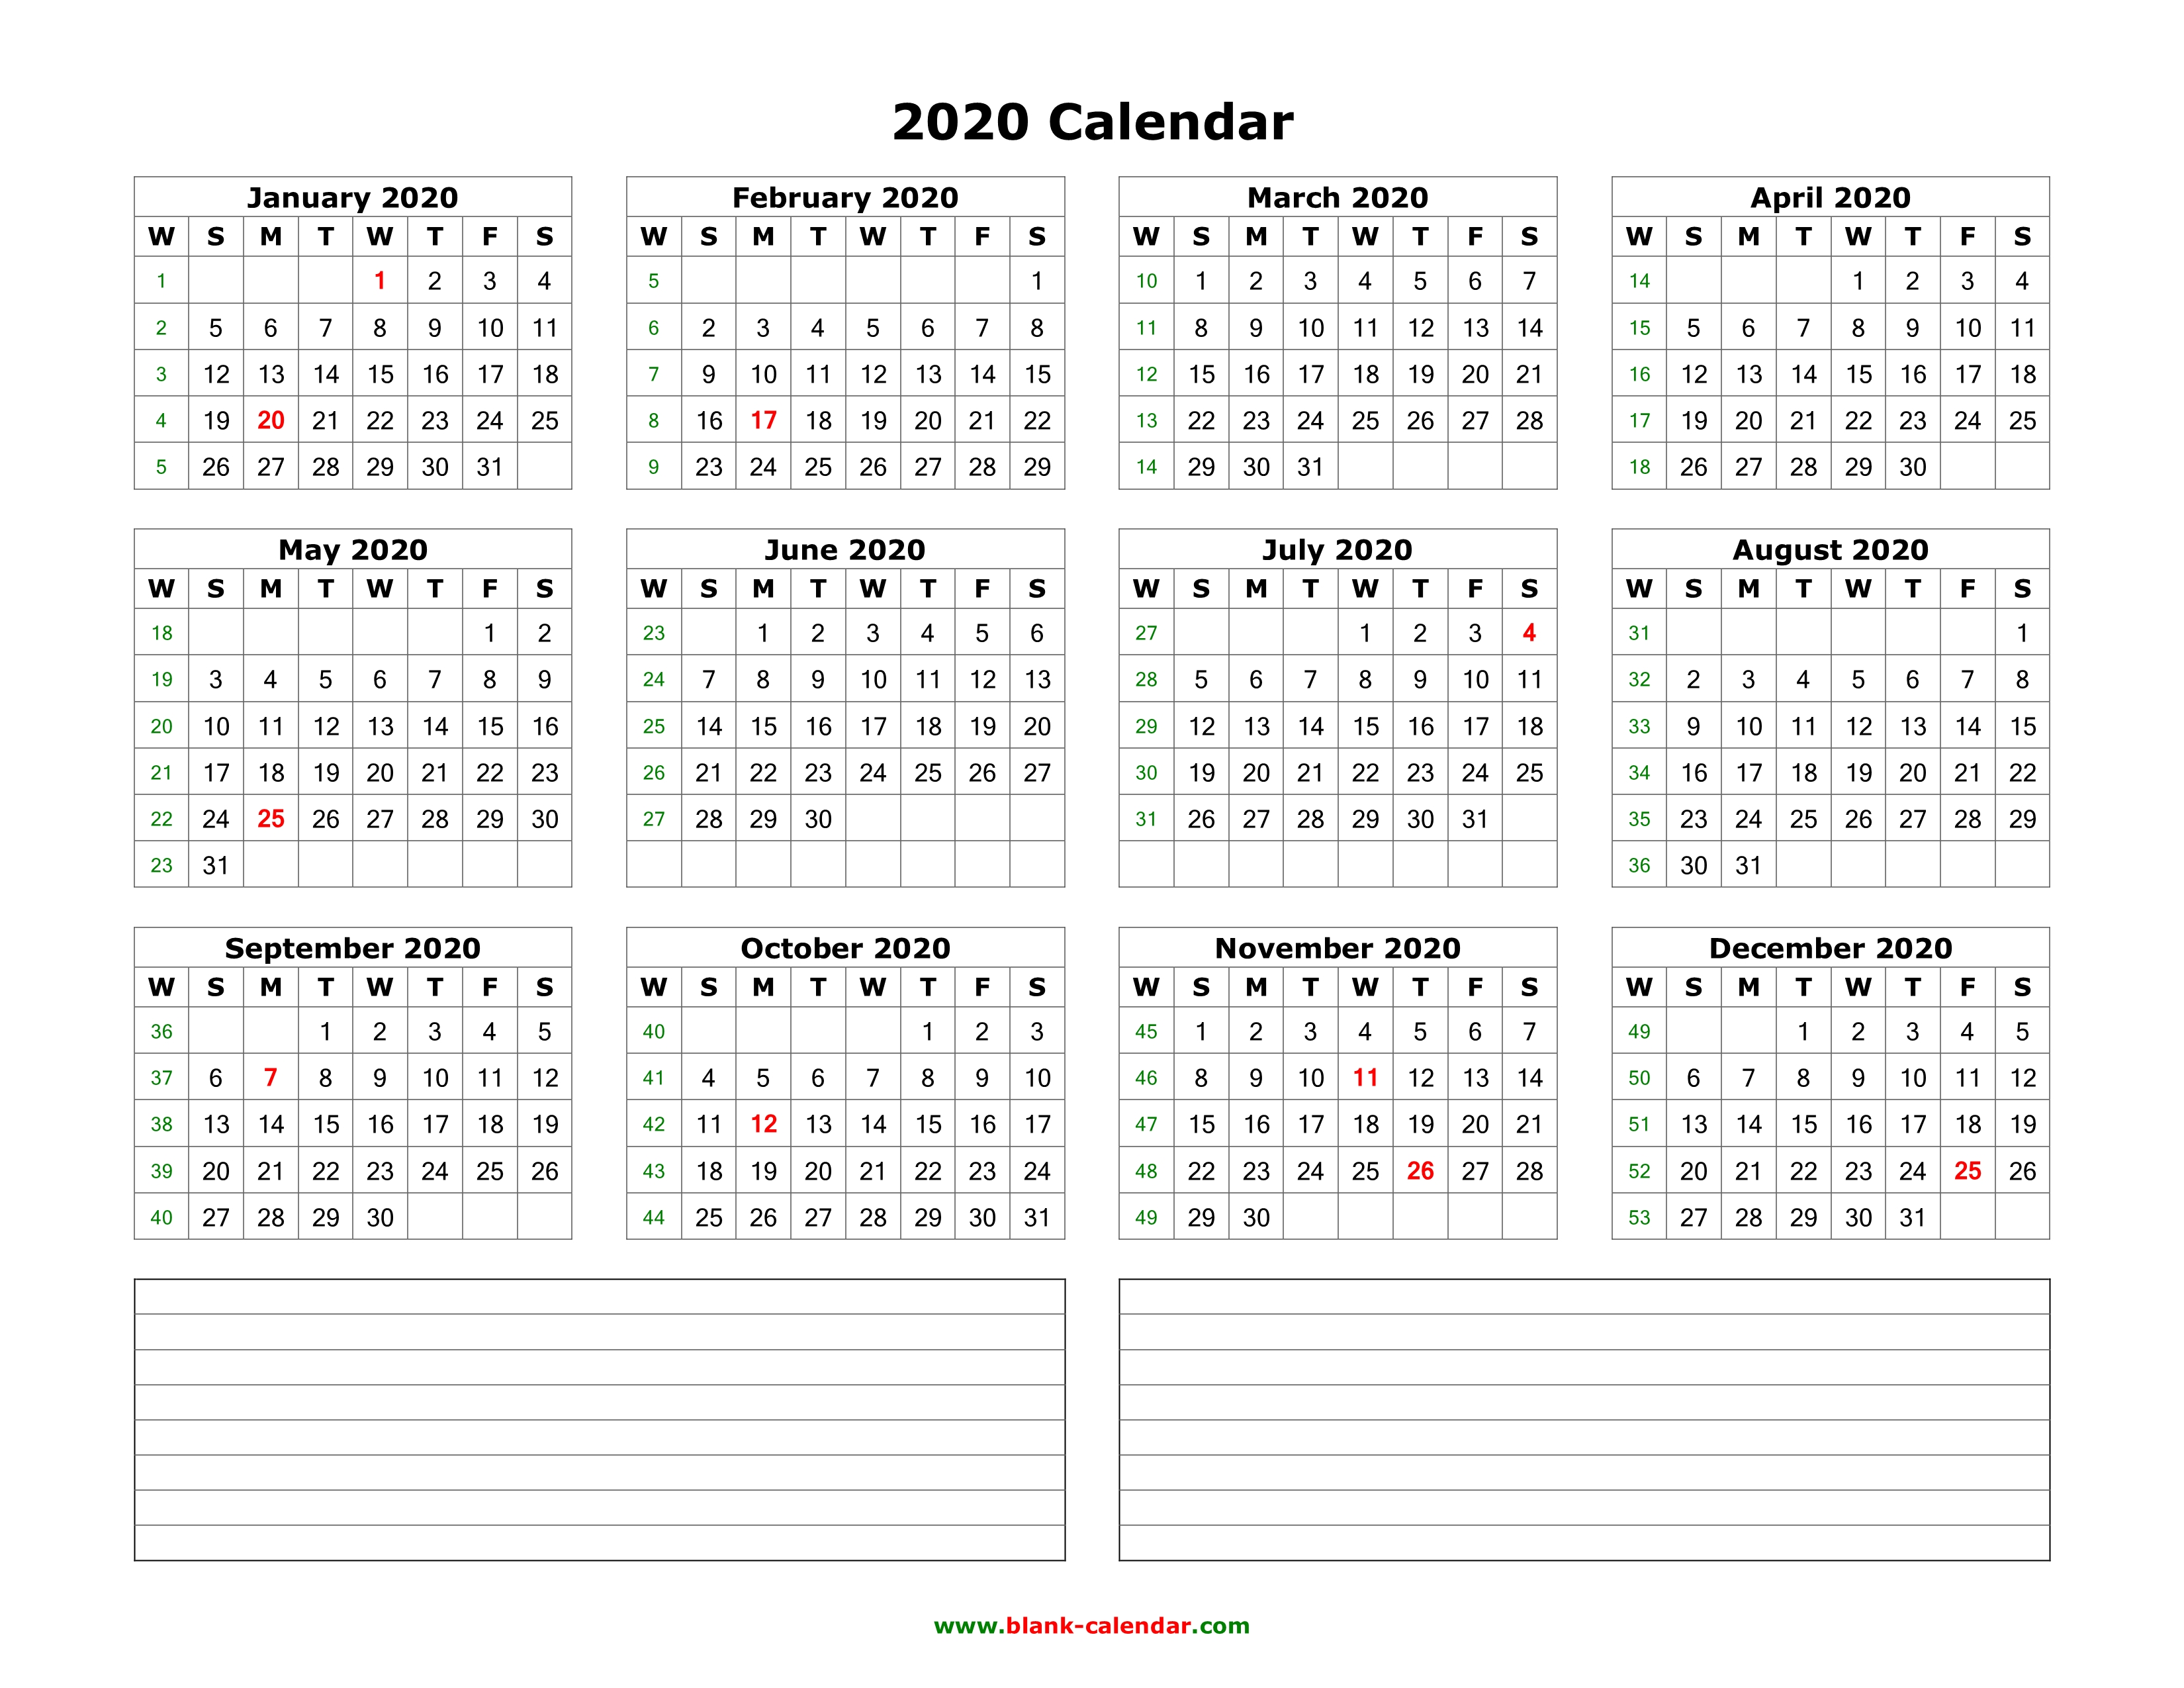 Blank 2020 Year Calendar Download Blank Calendar 2020 with Space for Notes (12 months on